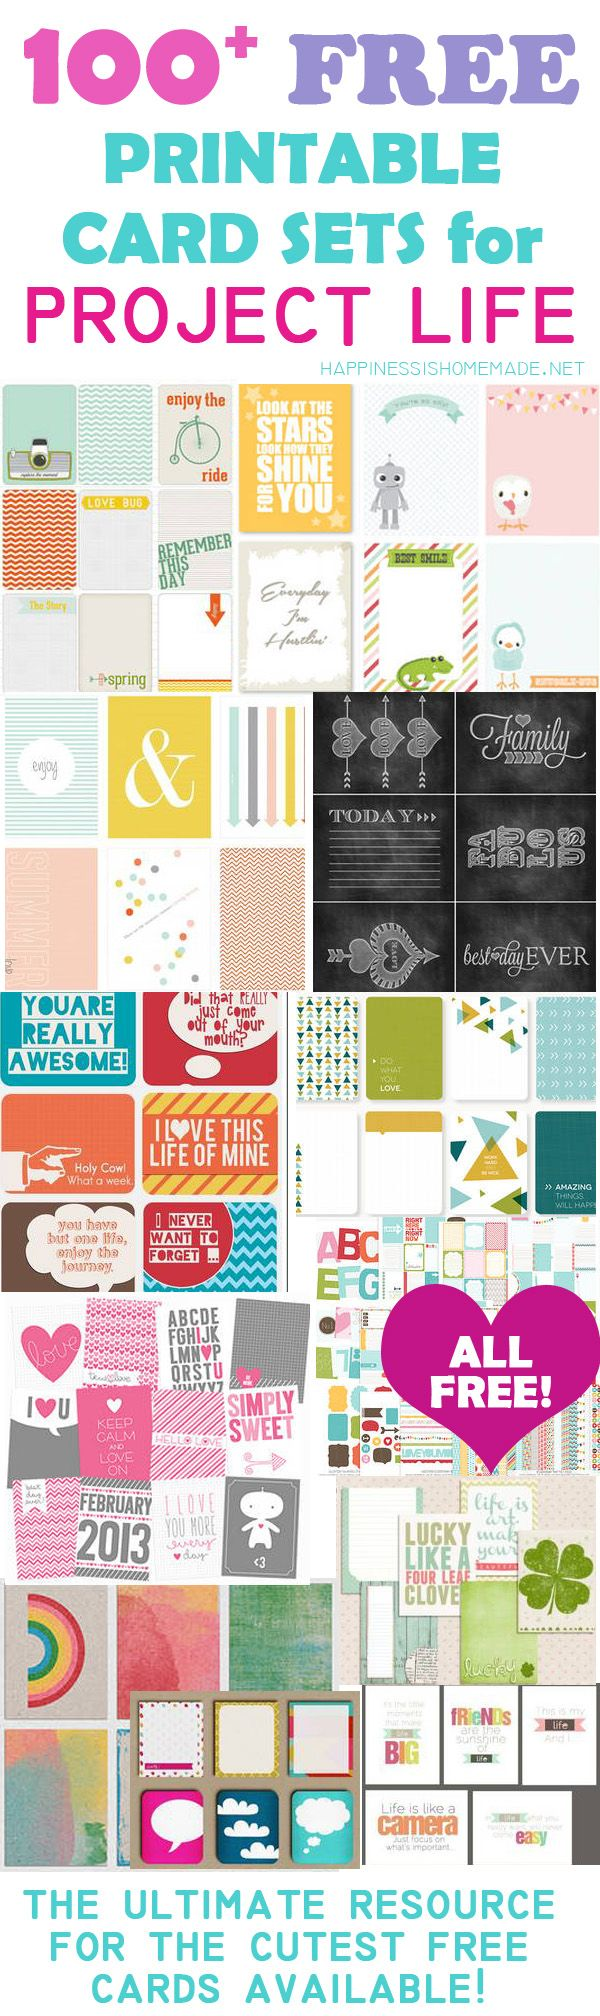 Over 100+ different Printable Project Life Card sets! This is an amazing resource! I might never need to buy Project Life journaling cards again!